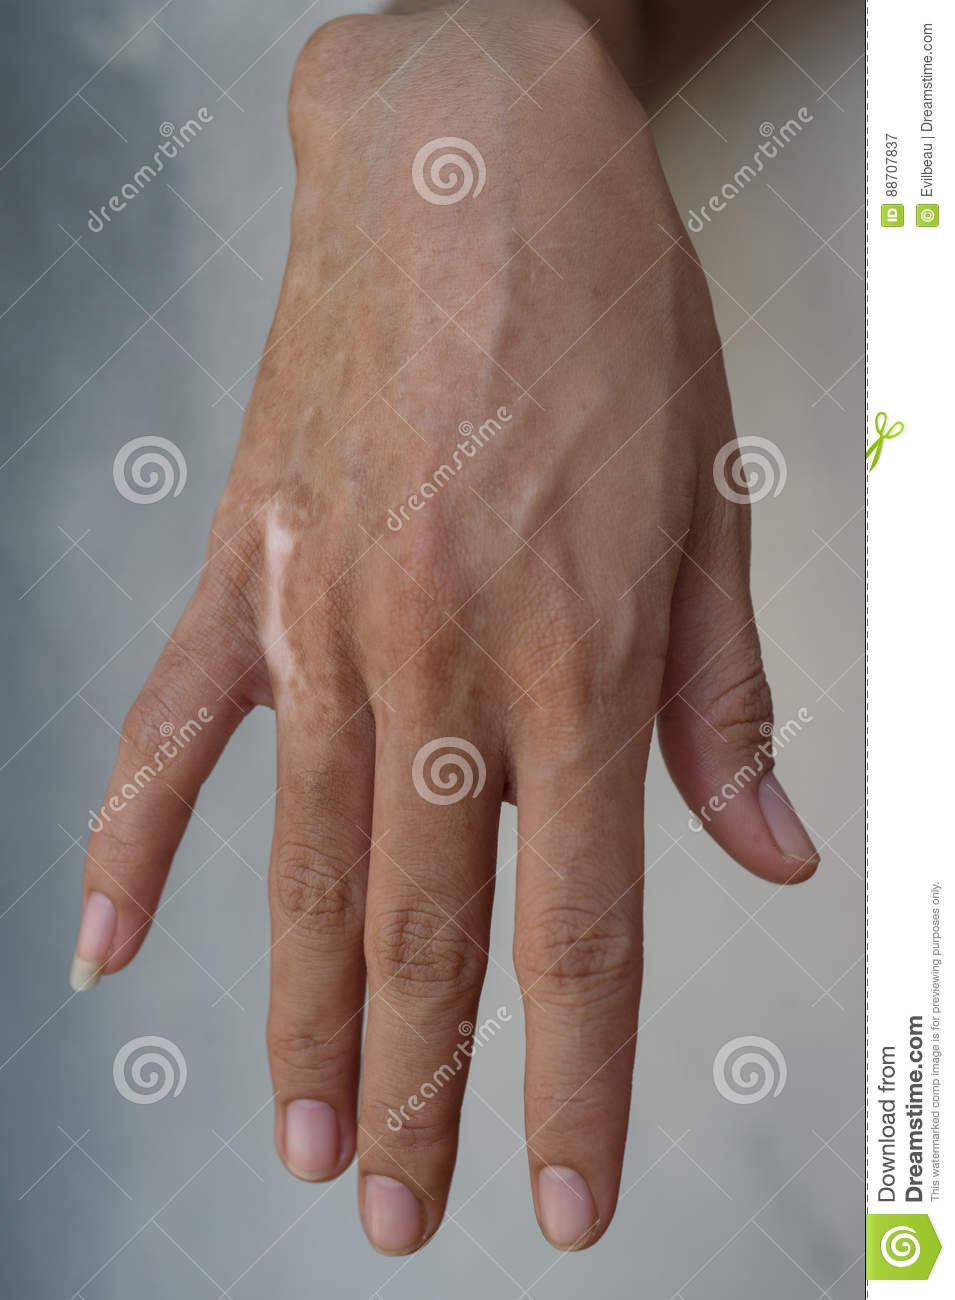 Burn Scar stock image  Image of person, painful, female - 88707837